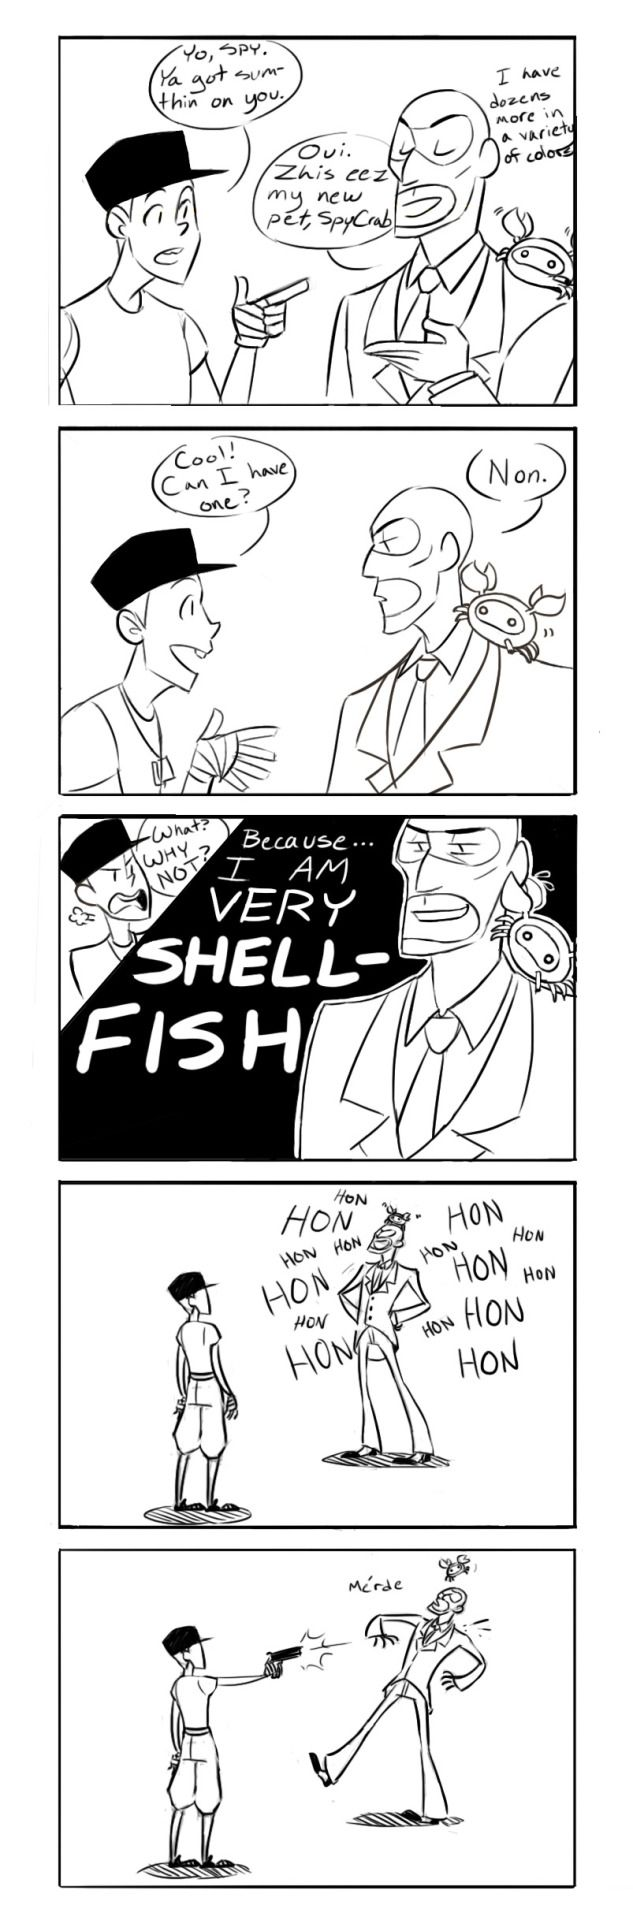 Oh, Spy, you're just a WHALE of a good time! That pun went SWIMMINGLY! I'm making jokes just for the HALIBUT!